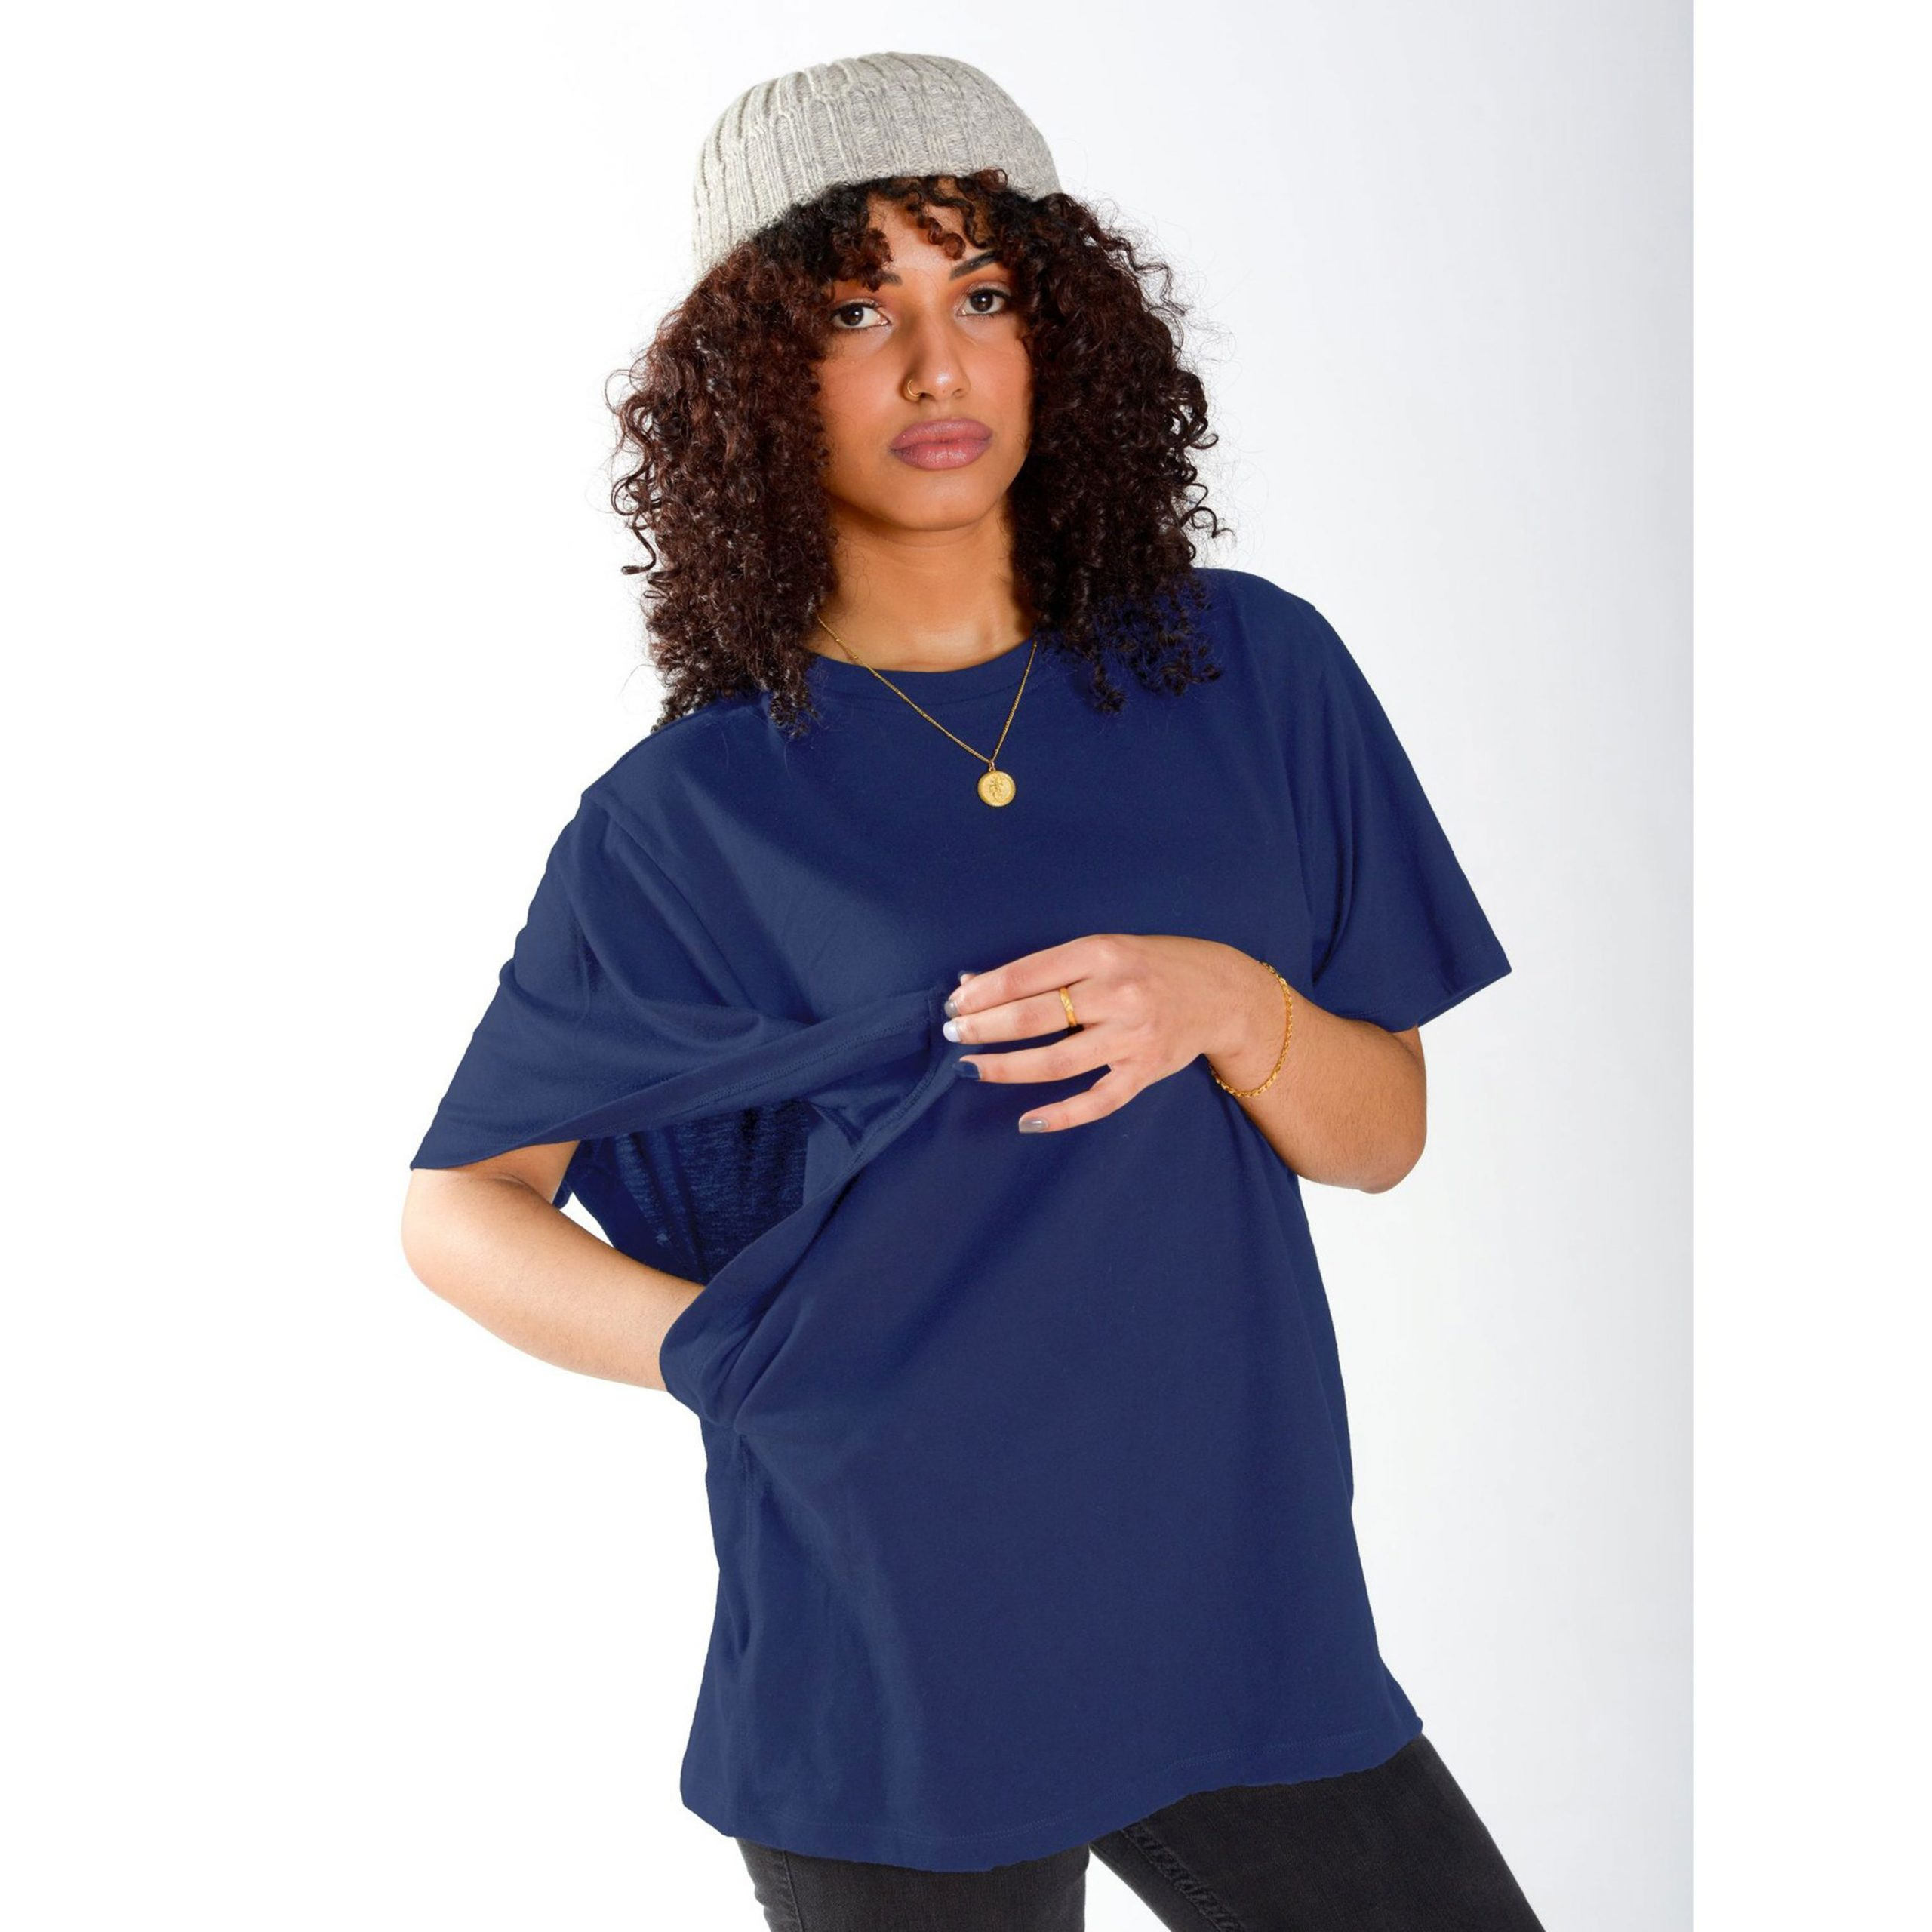 Person wearing easy arm access tshirt